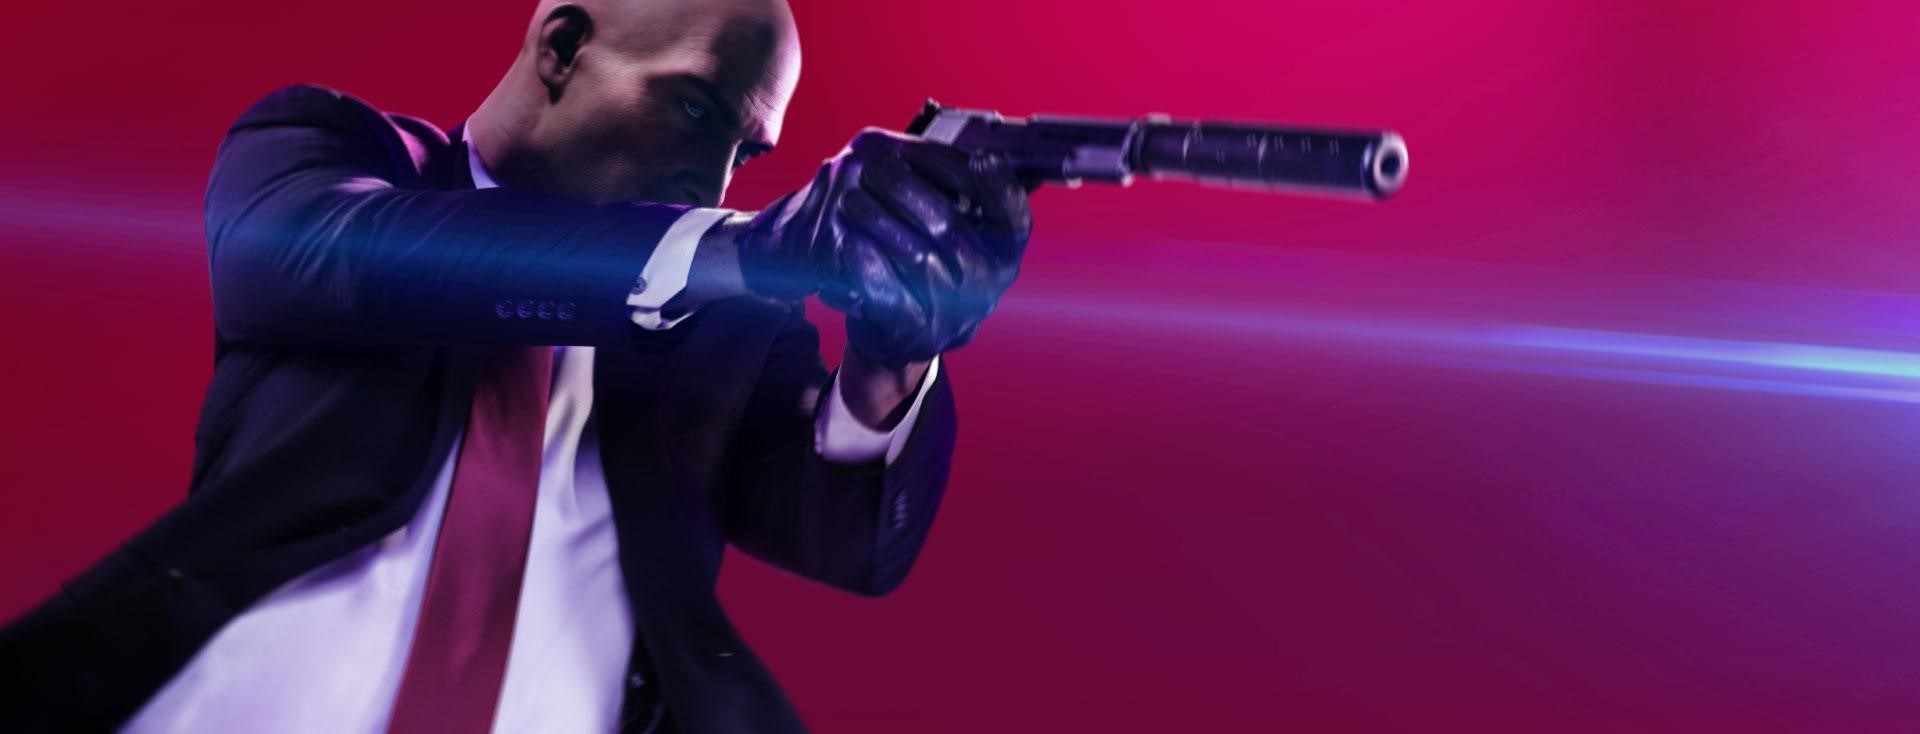 Hitman 2 is a stealth video game developed by IO Interactive. It is a sequel to HITMAN released in 2016 and is considered as a major improvement over its predecessor.